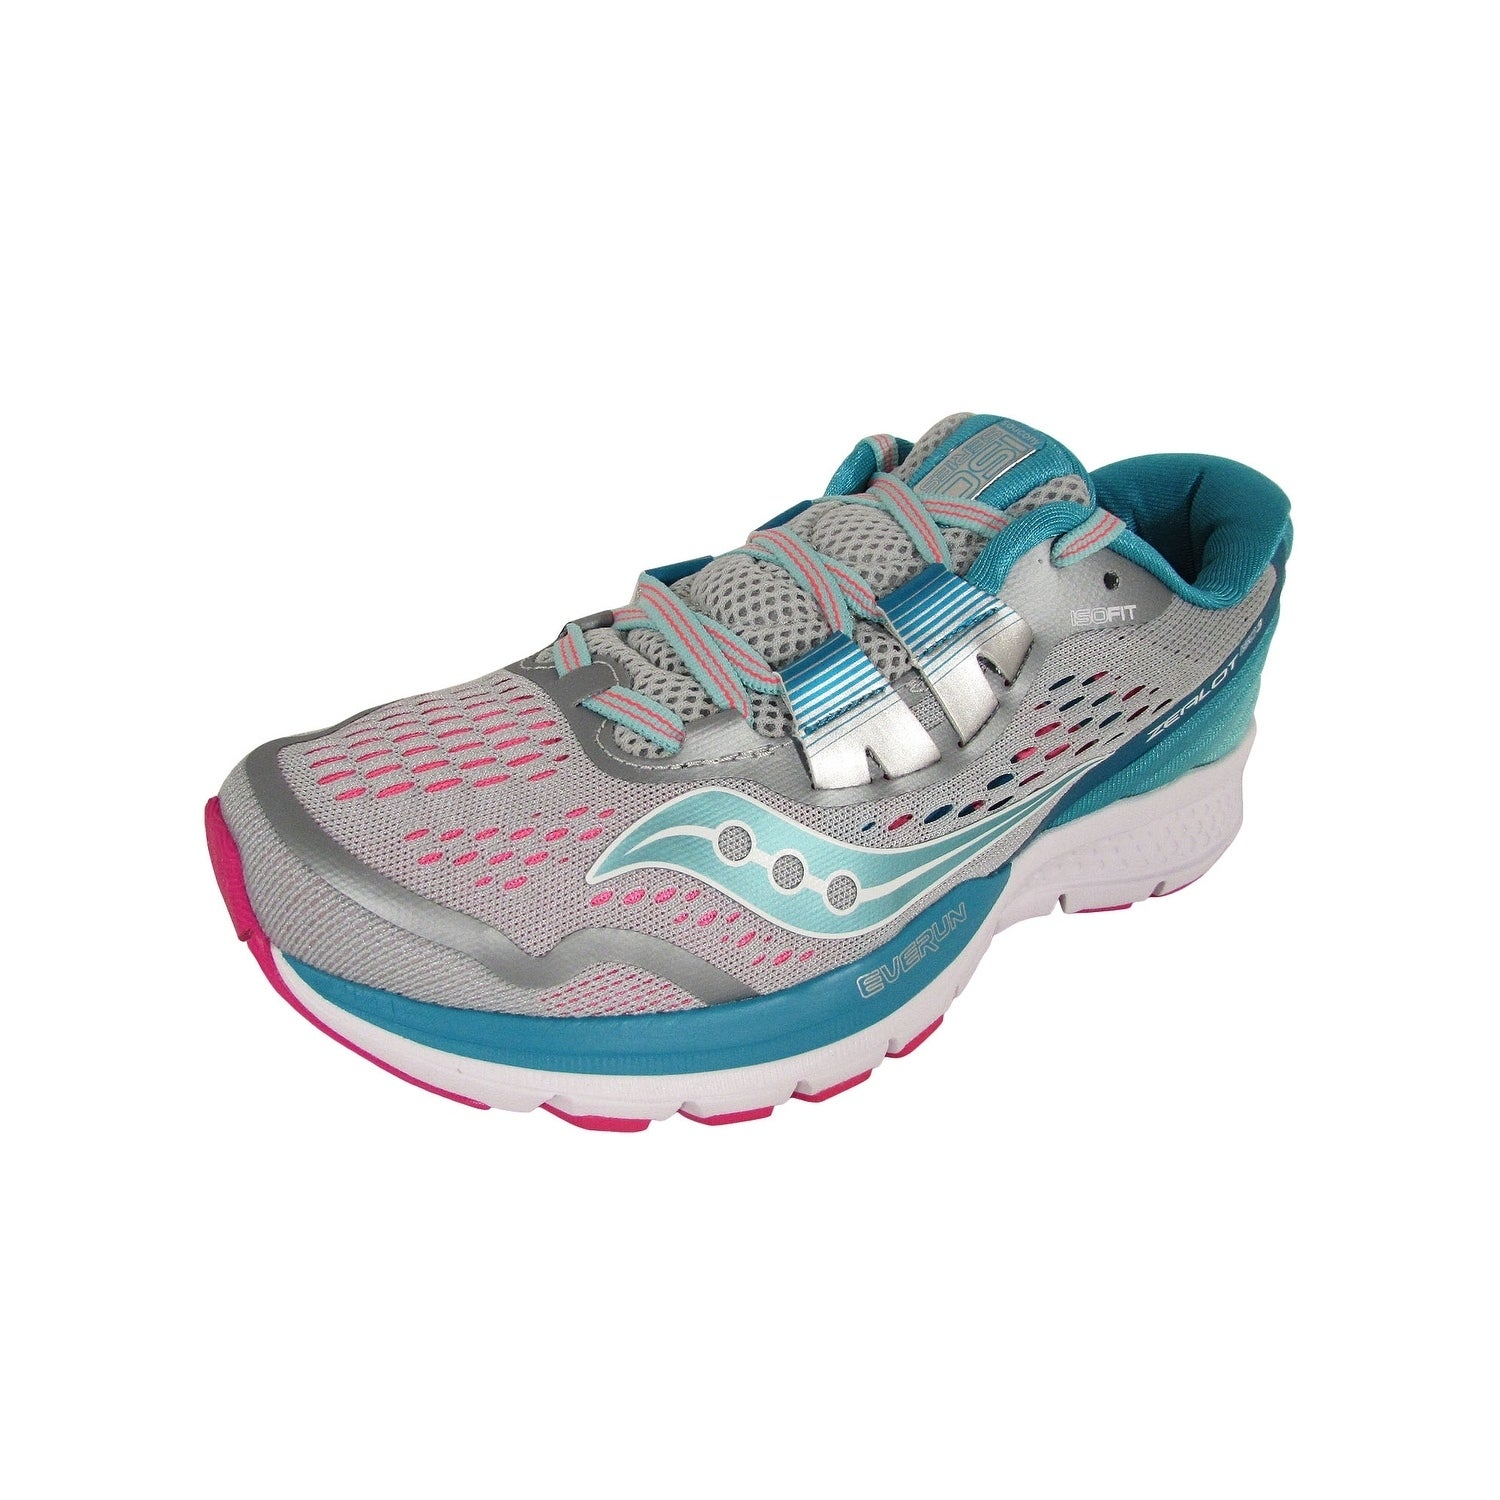 cda116479f31 Details about Saucony Women Zealot ISO 3 Neutral Running Shoes